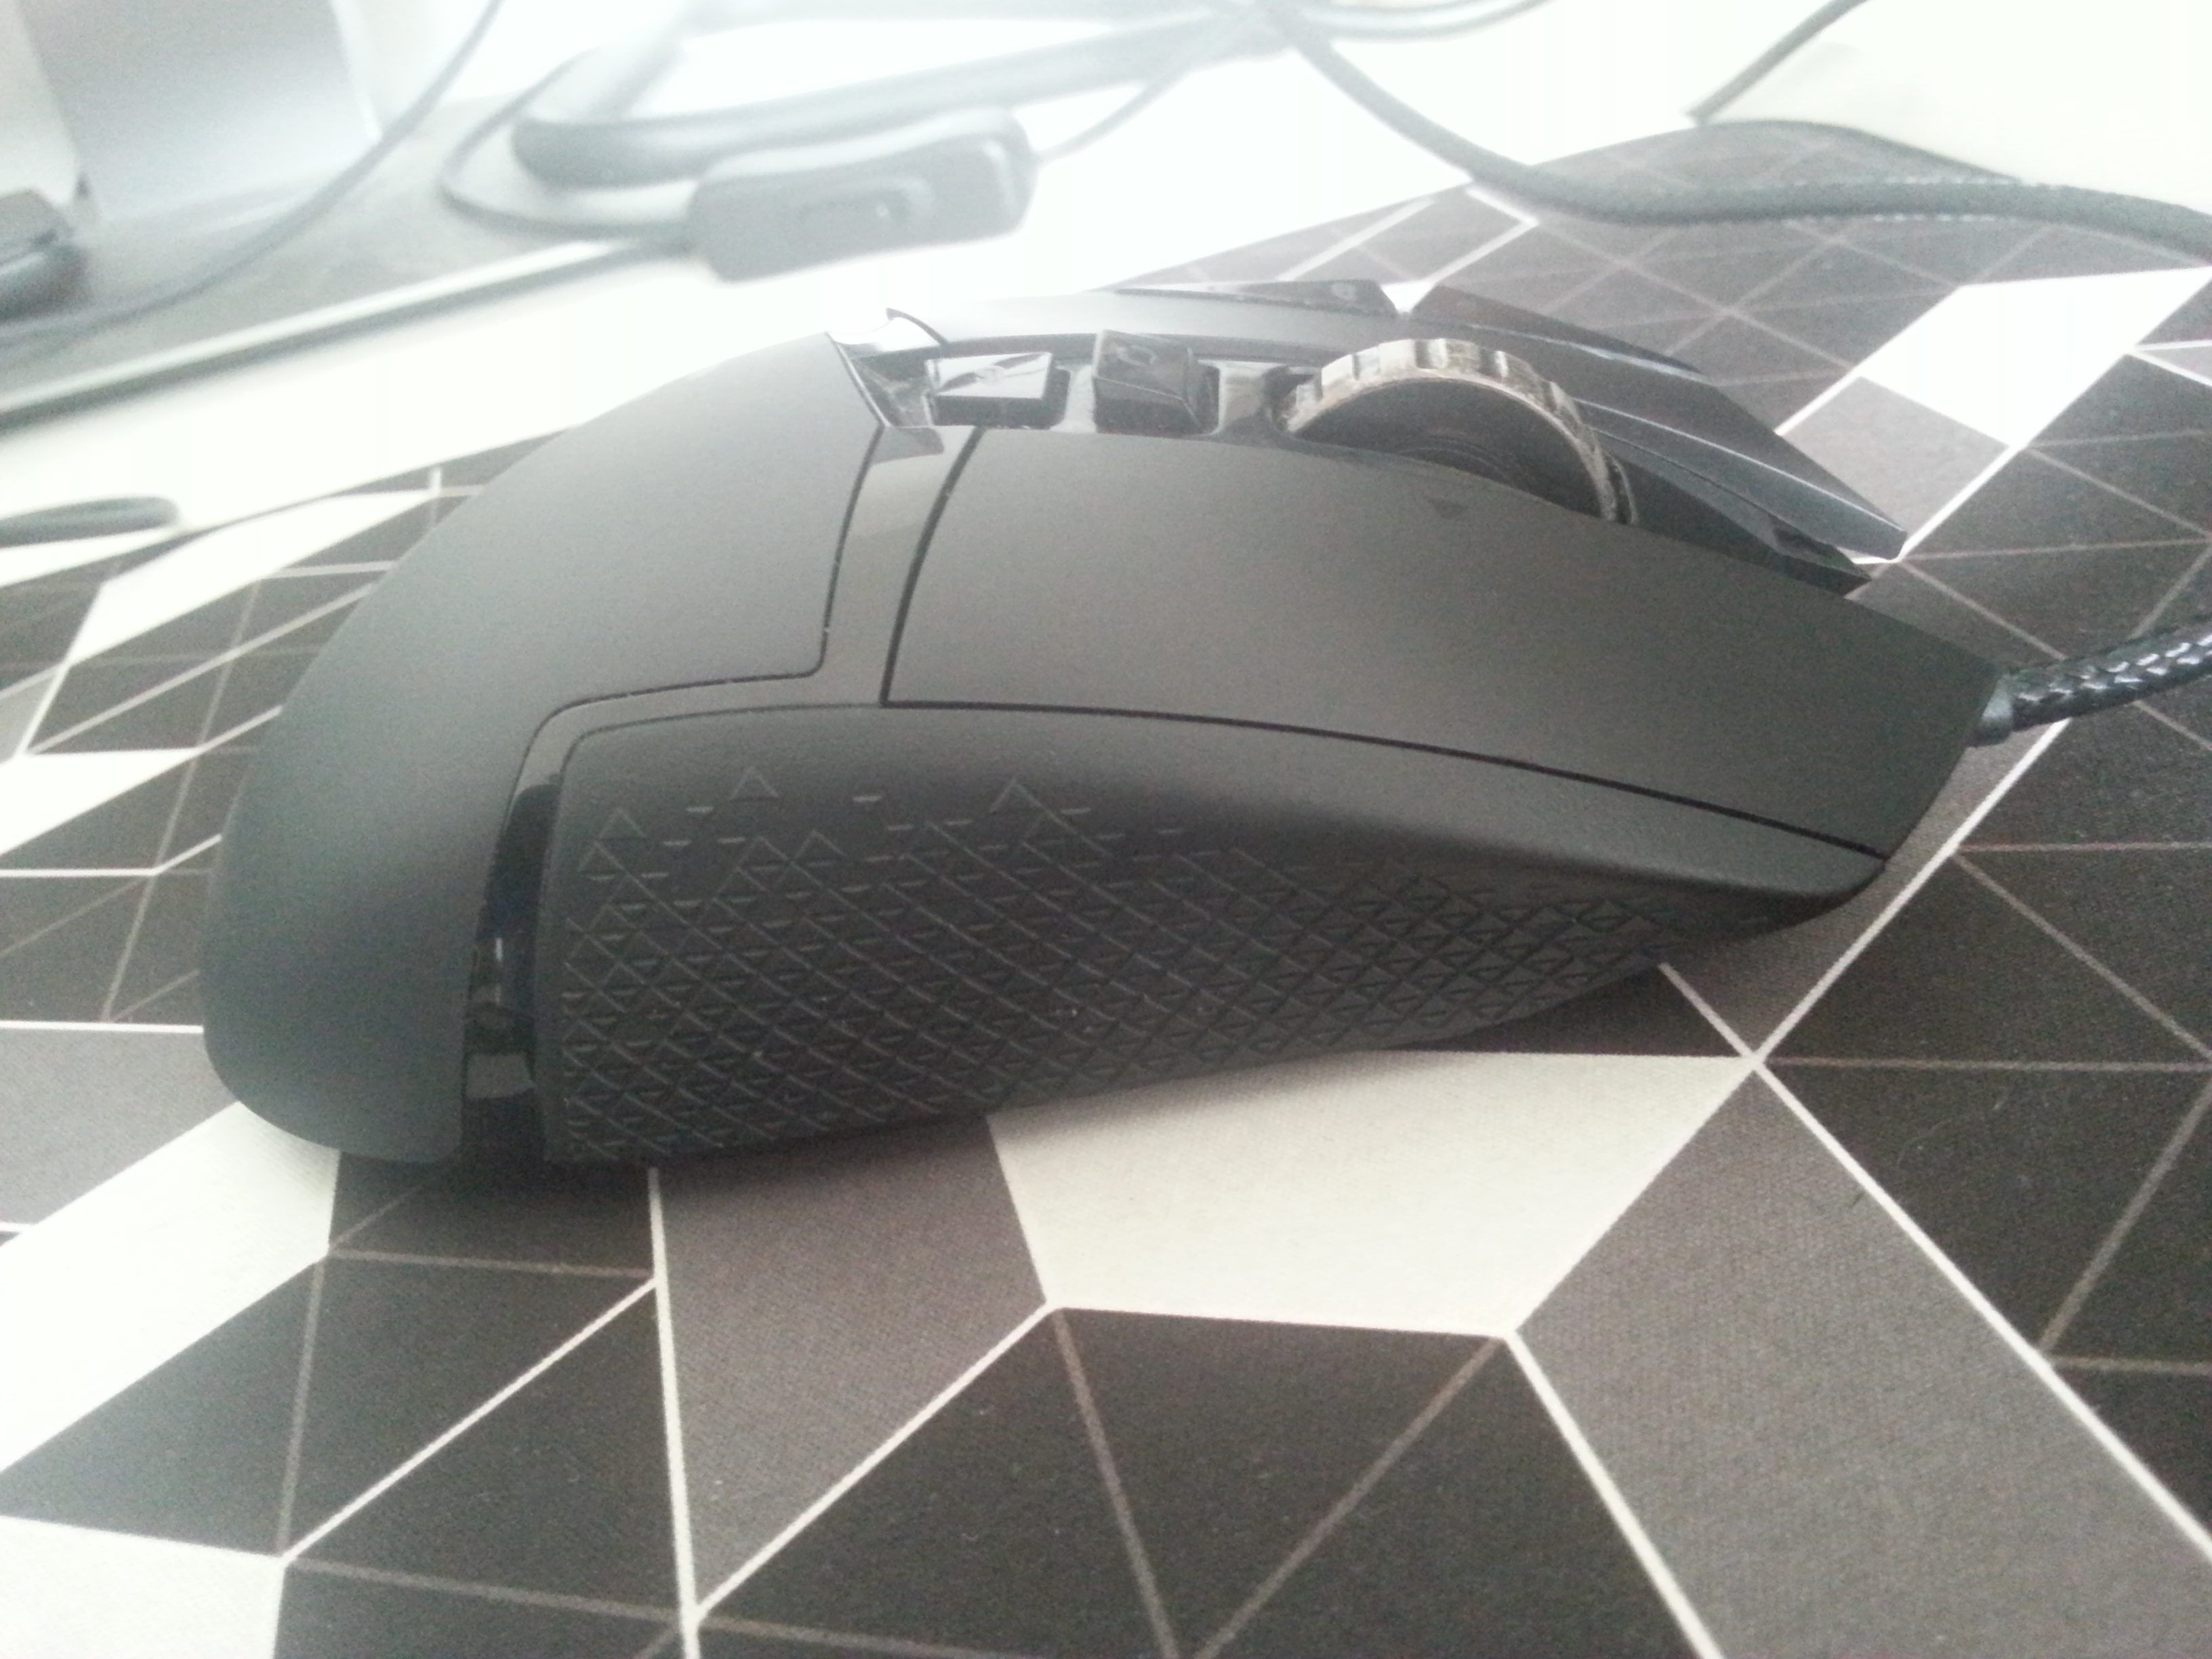 Logitech G502 Right Side